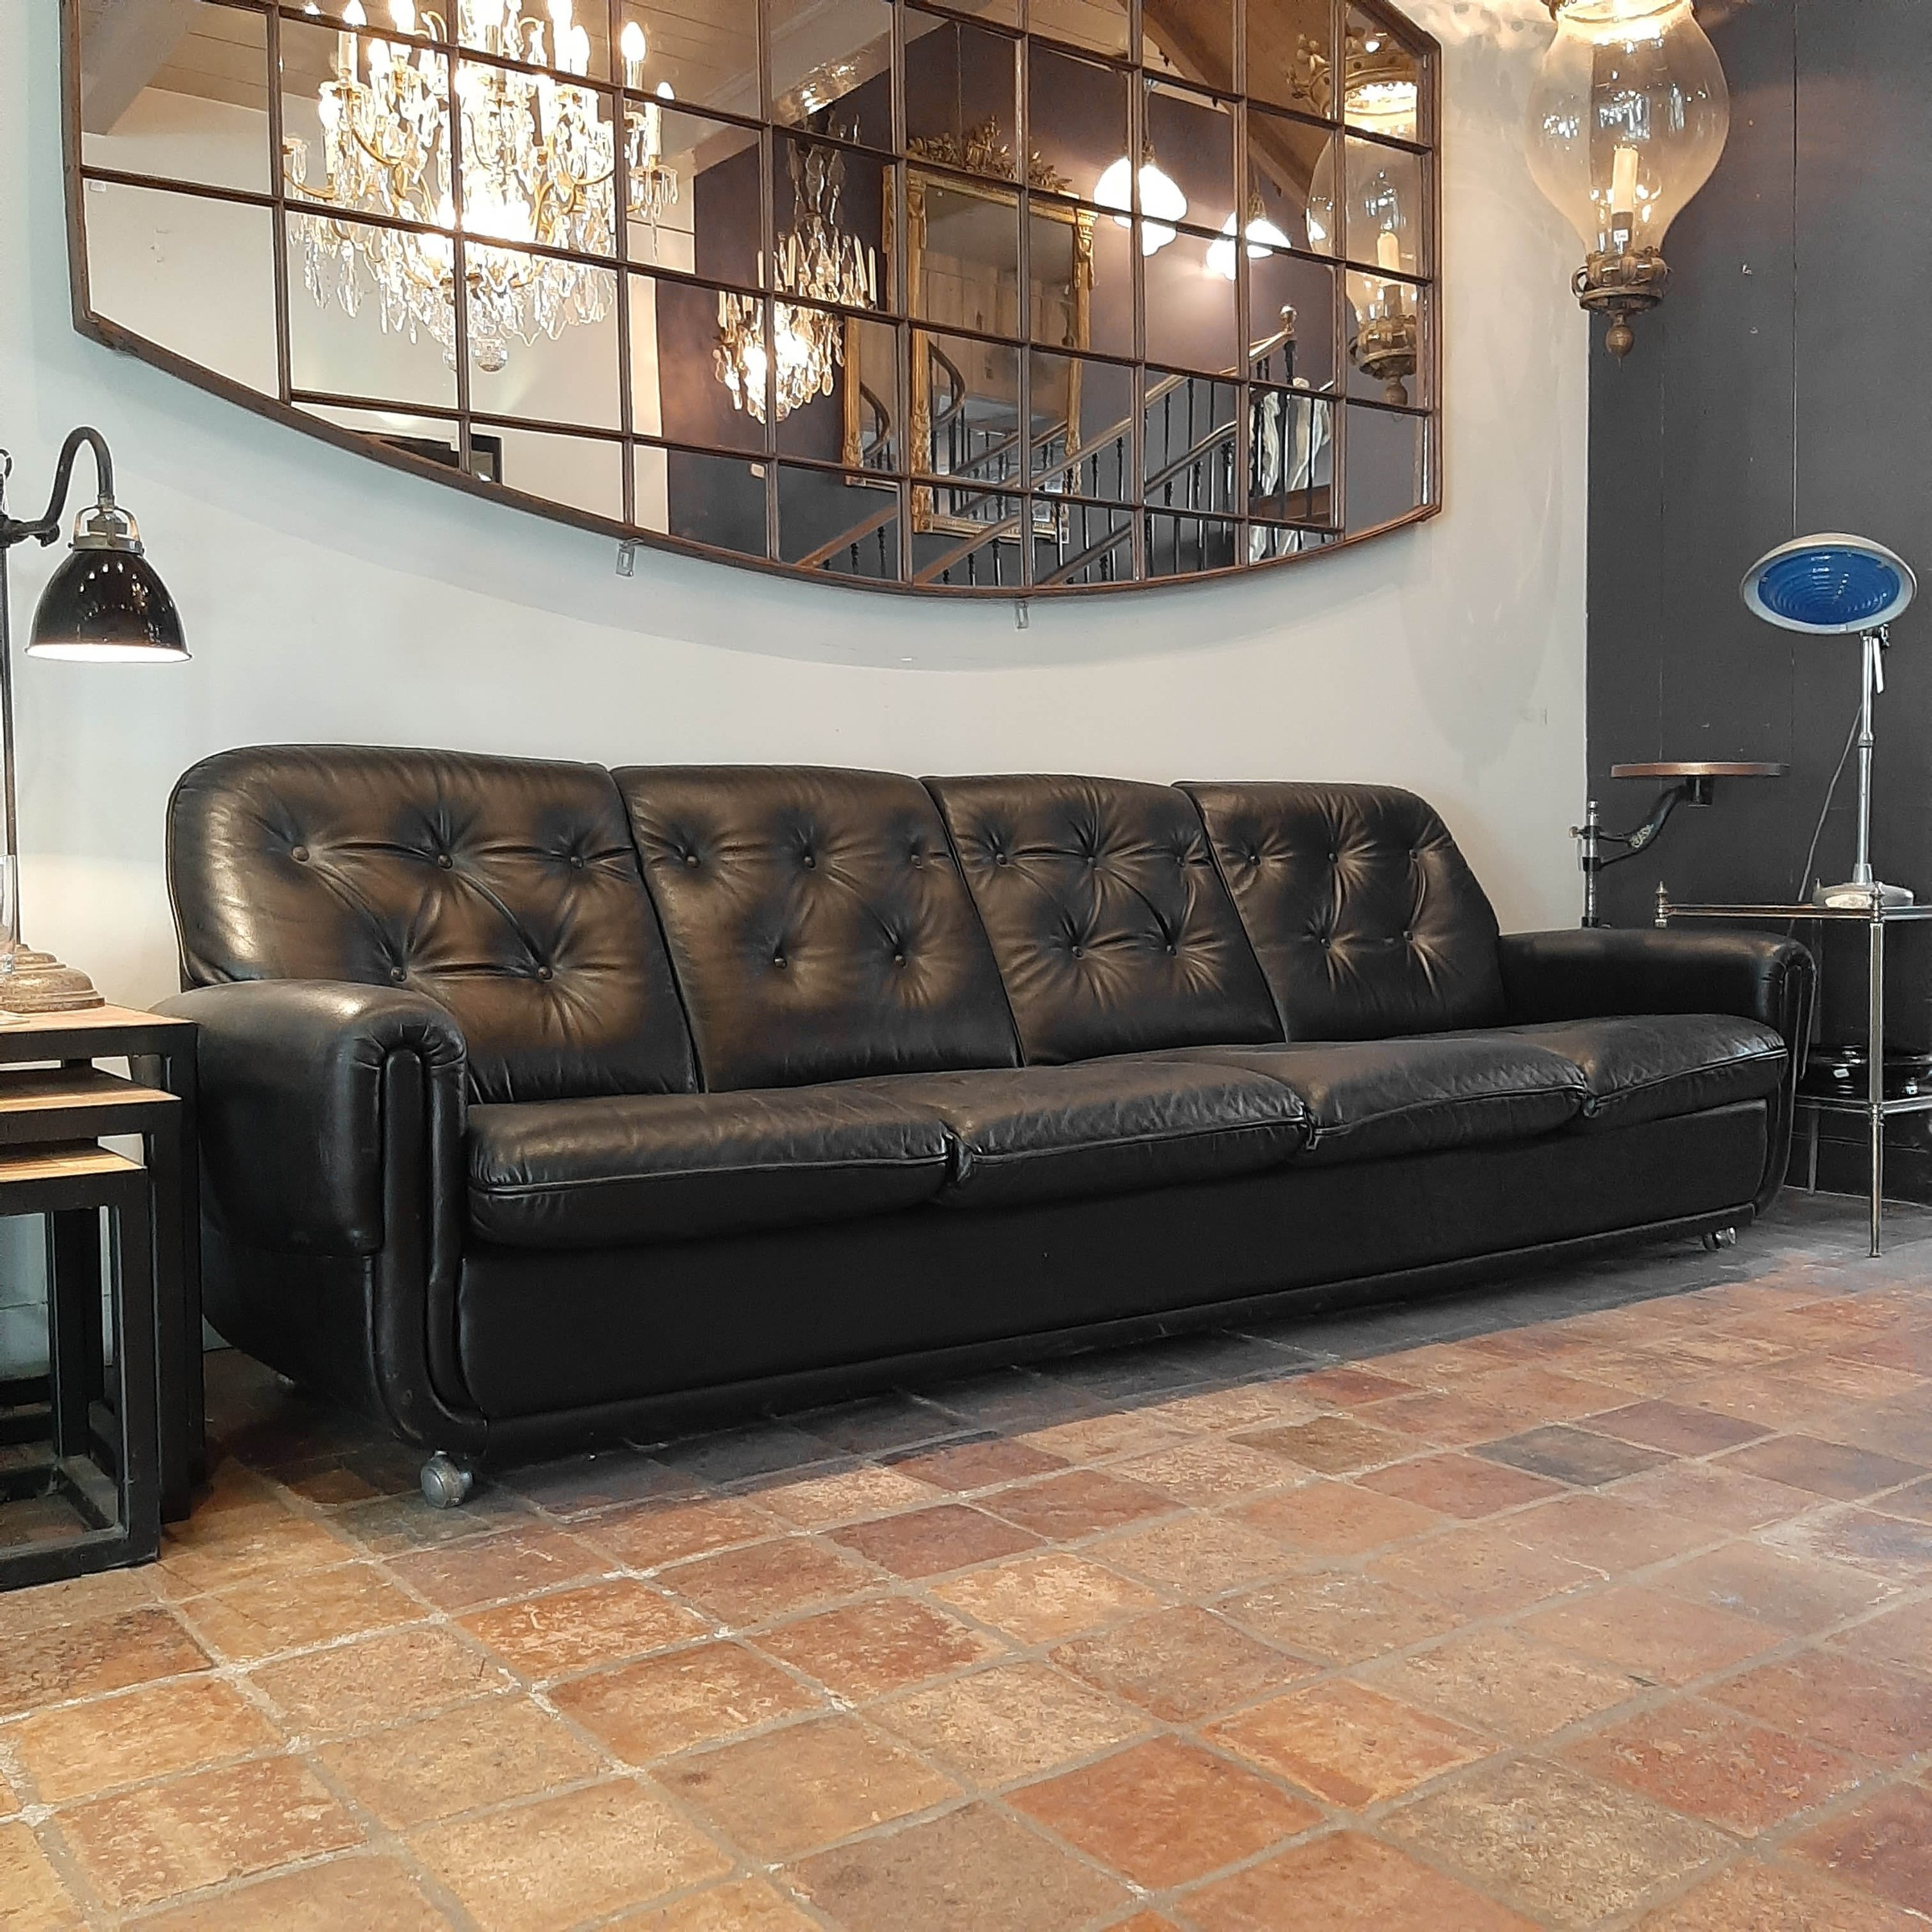 Vintage four-seater sofa made of black leather